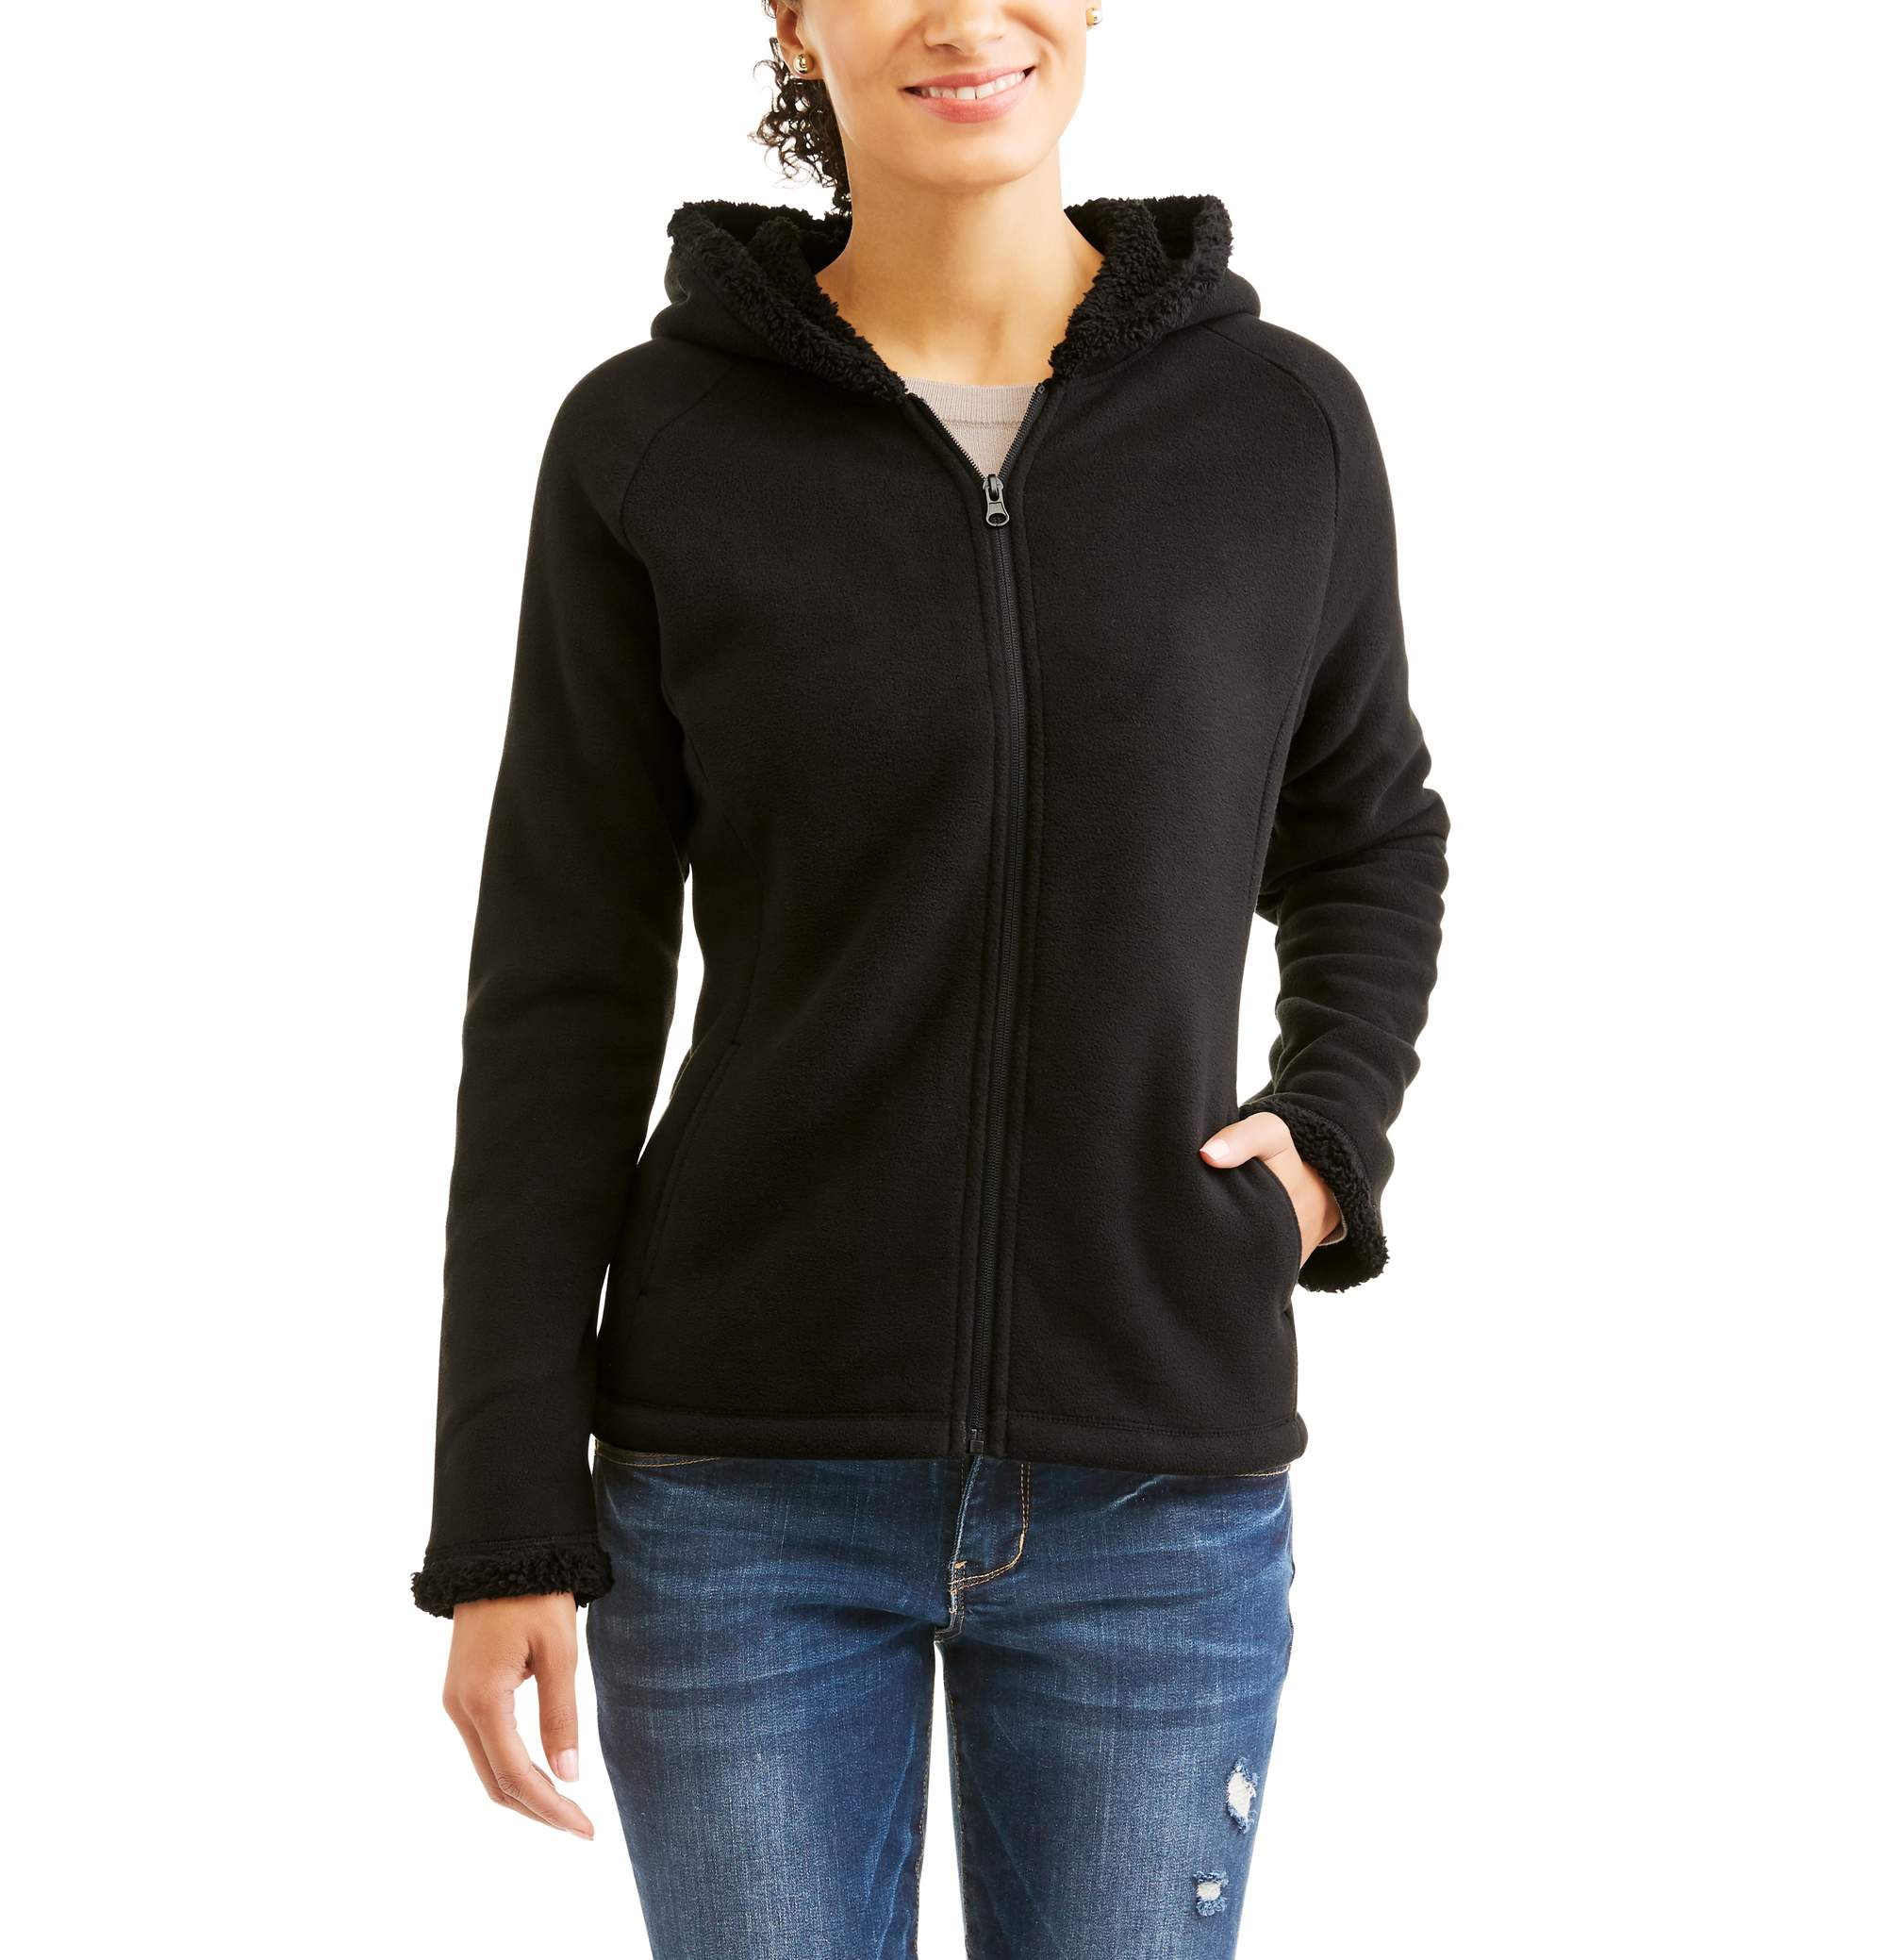 Faded Glory Women's Microfleece Hoodie With Cozy Sherpa Lining